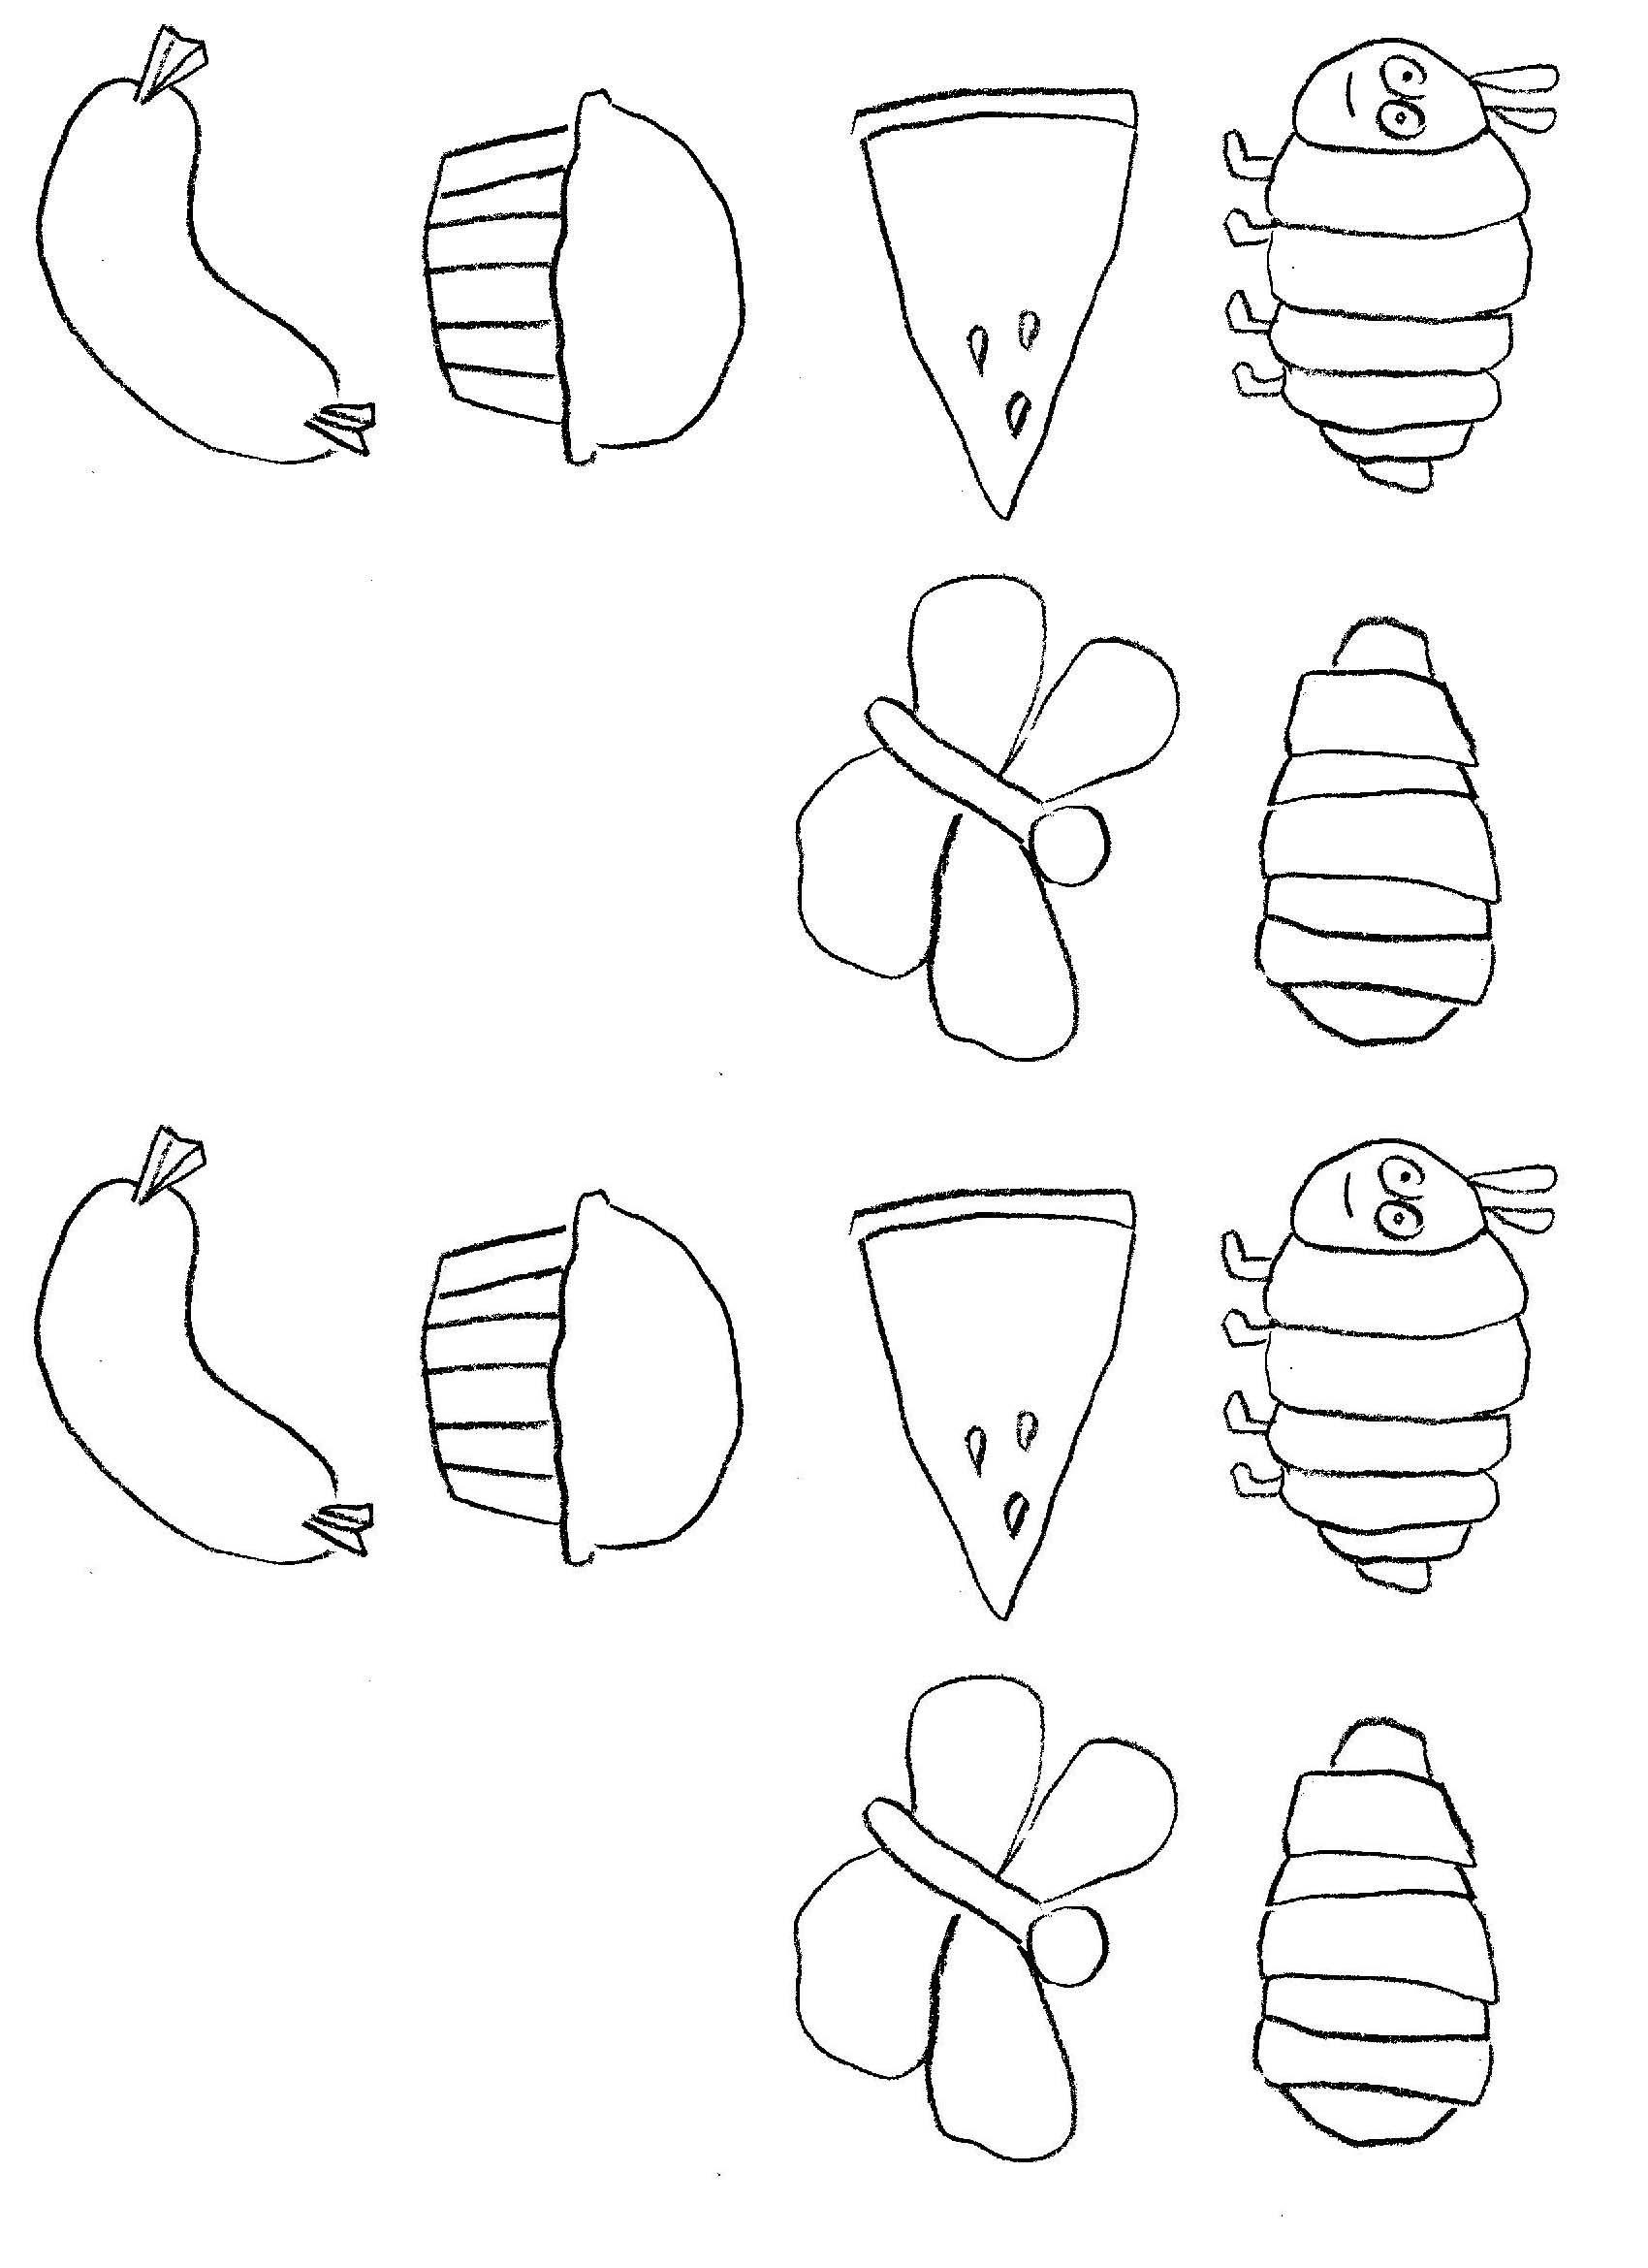 hungry caterpillar coloring pages - photo#23